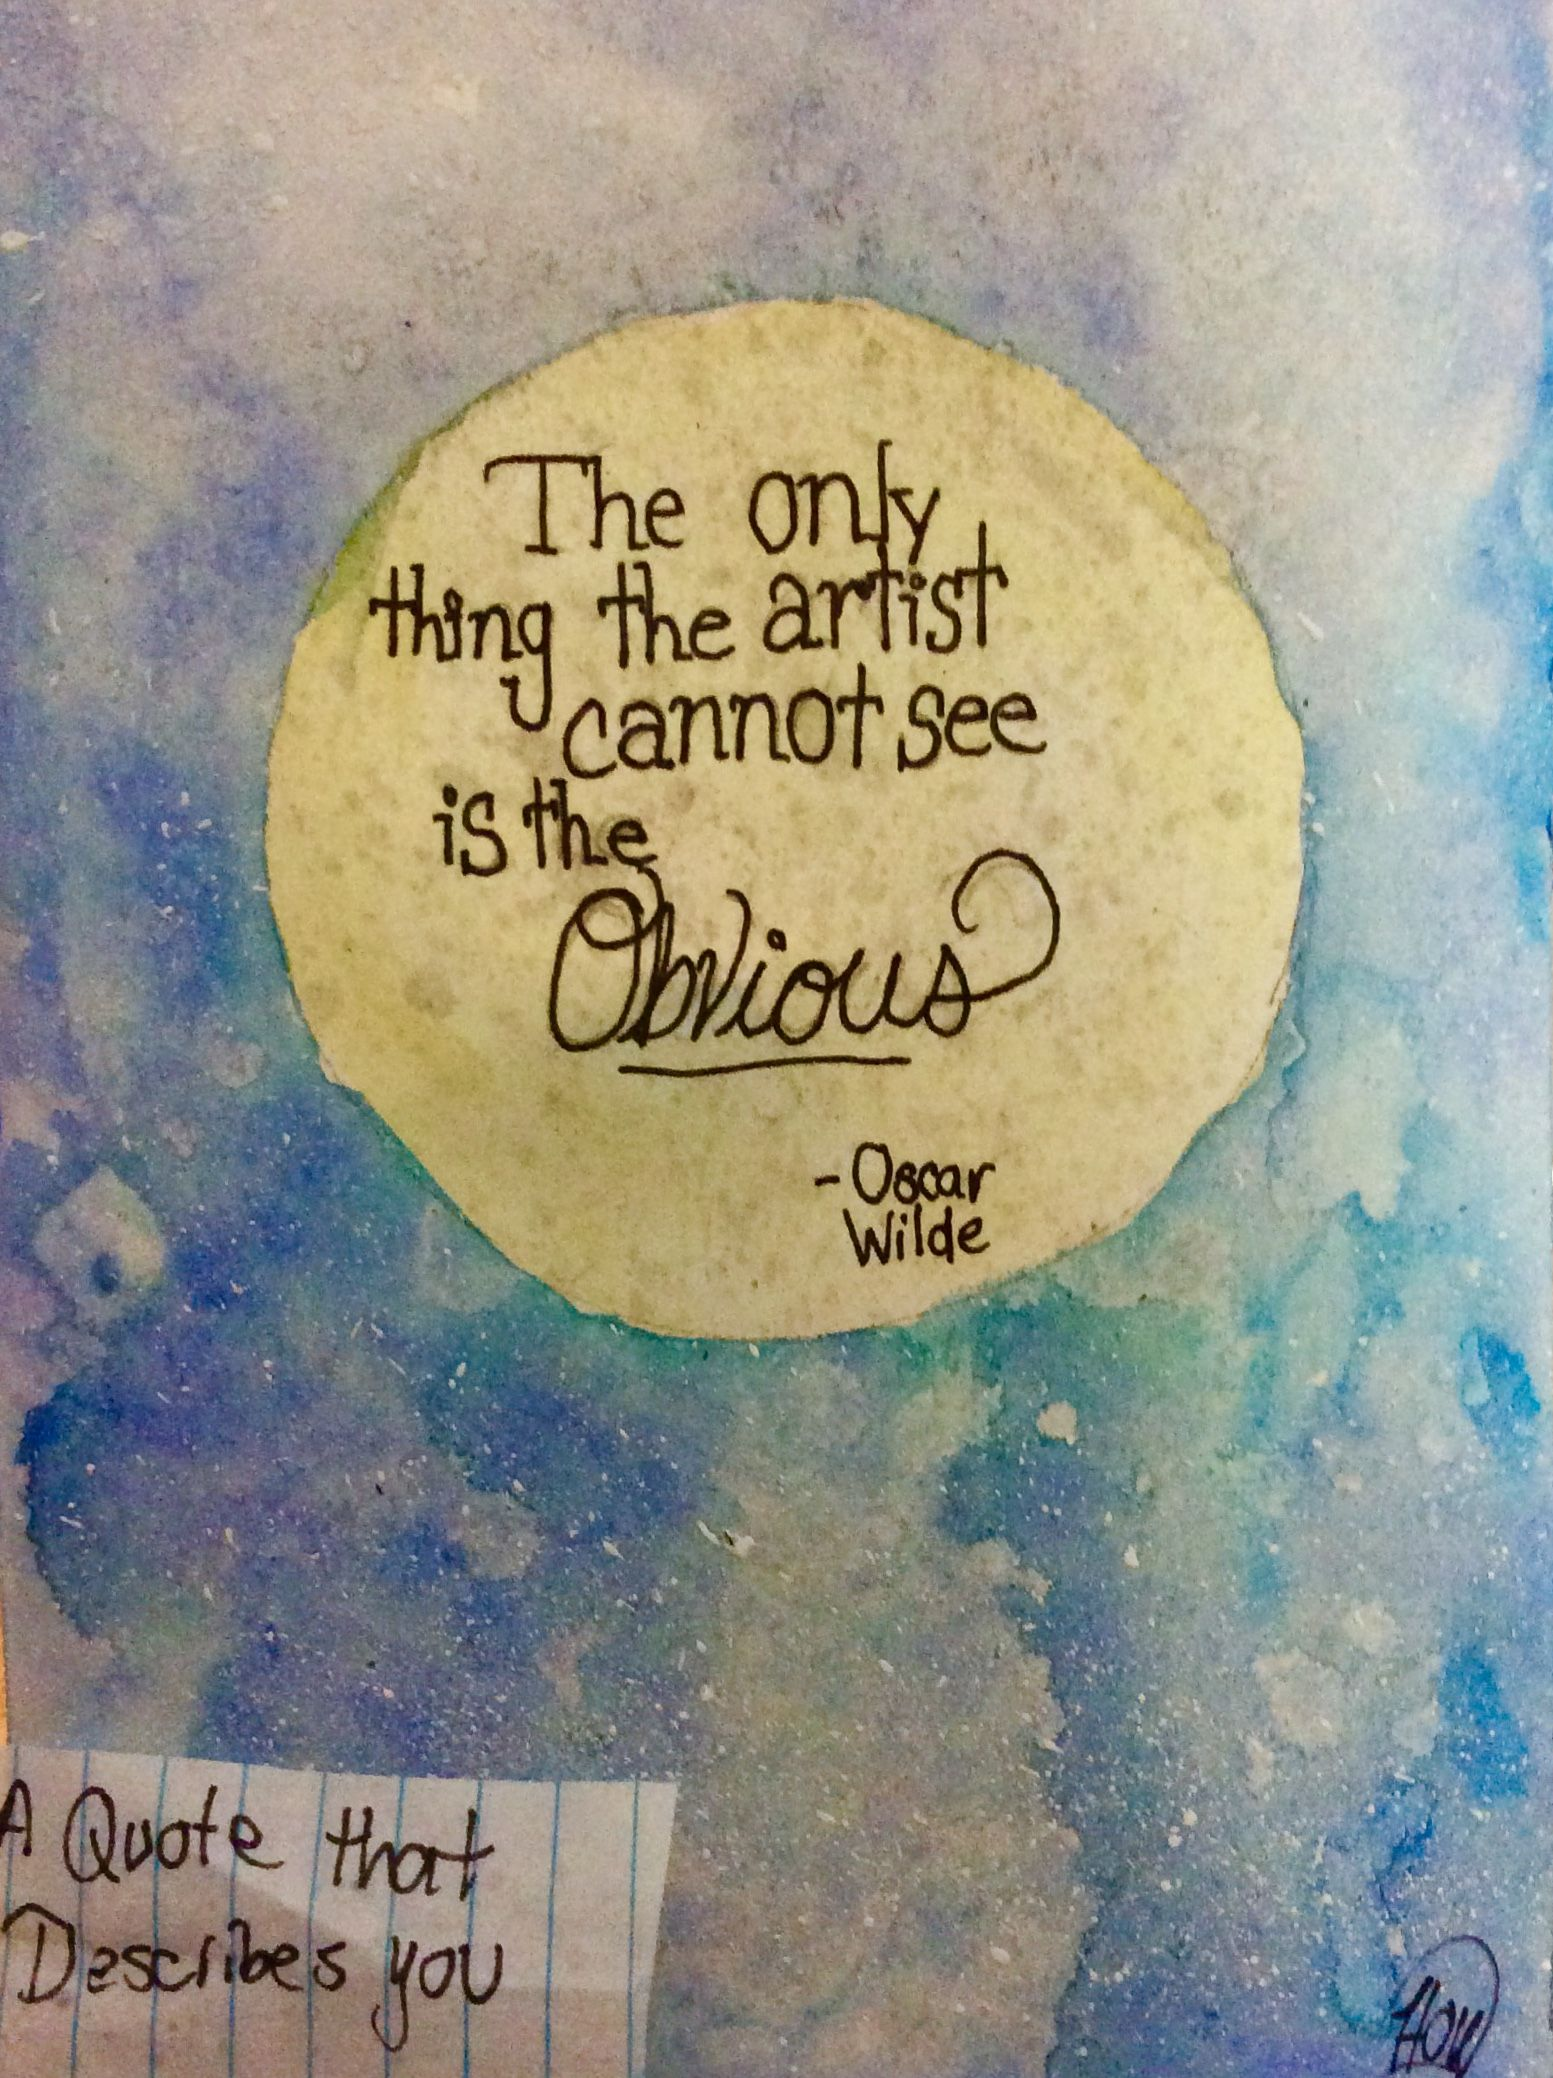 Pulled Out The Water Colors For This One When Thinking Of A Quote